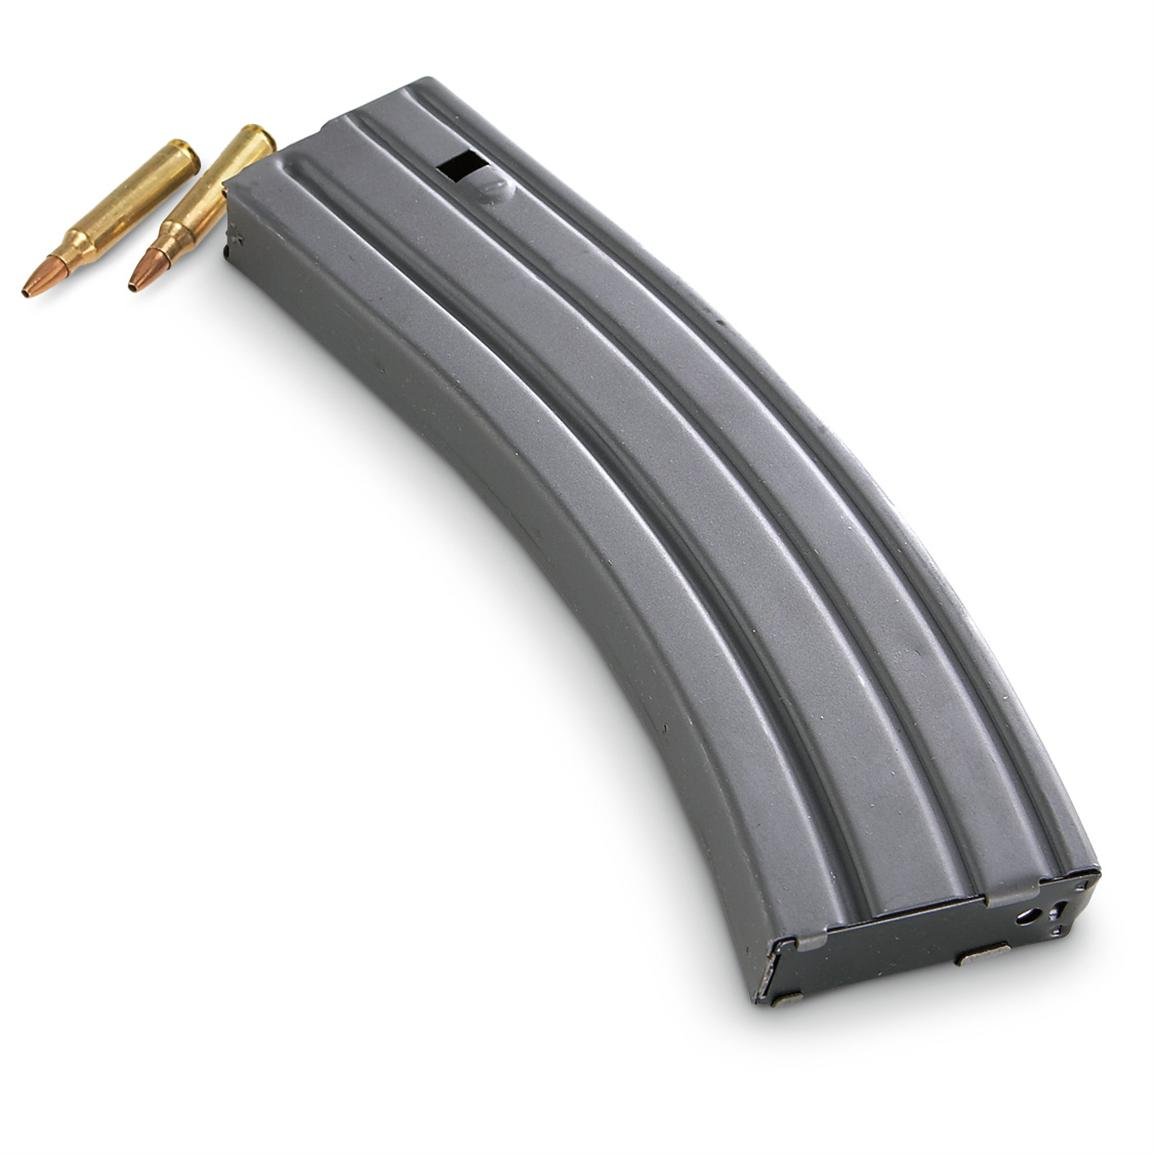 National Magazines AR-15 / M16 Steel Magazine, 40 Rounds